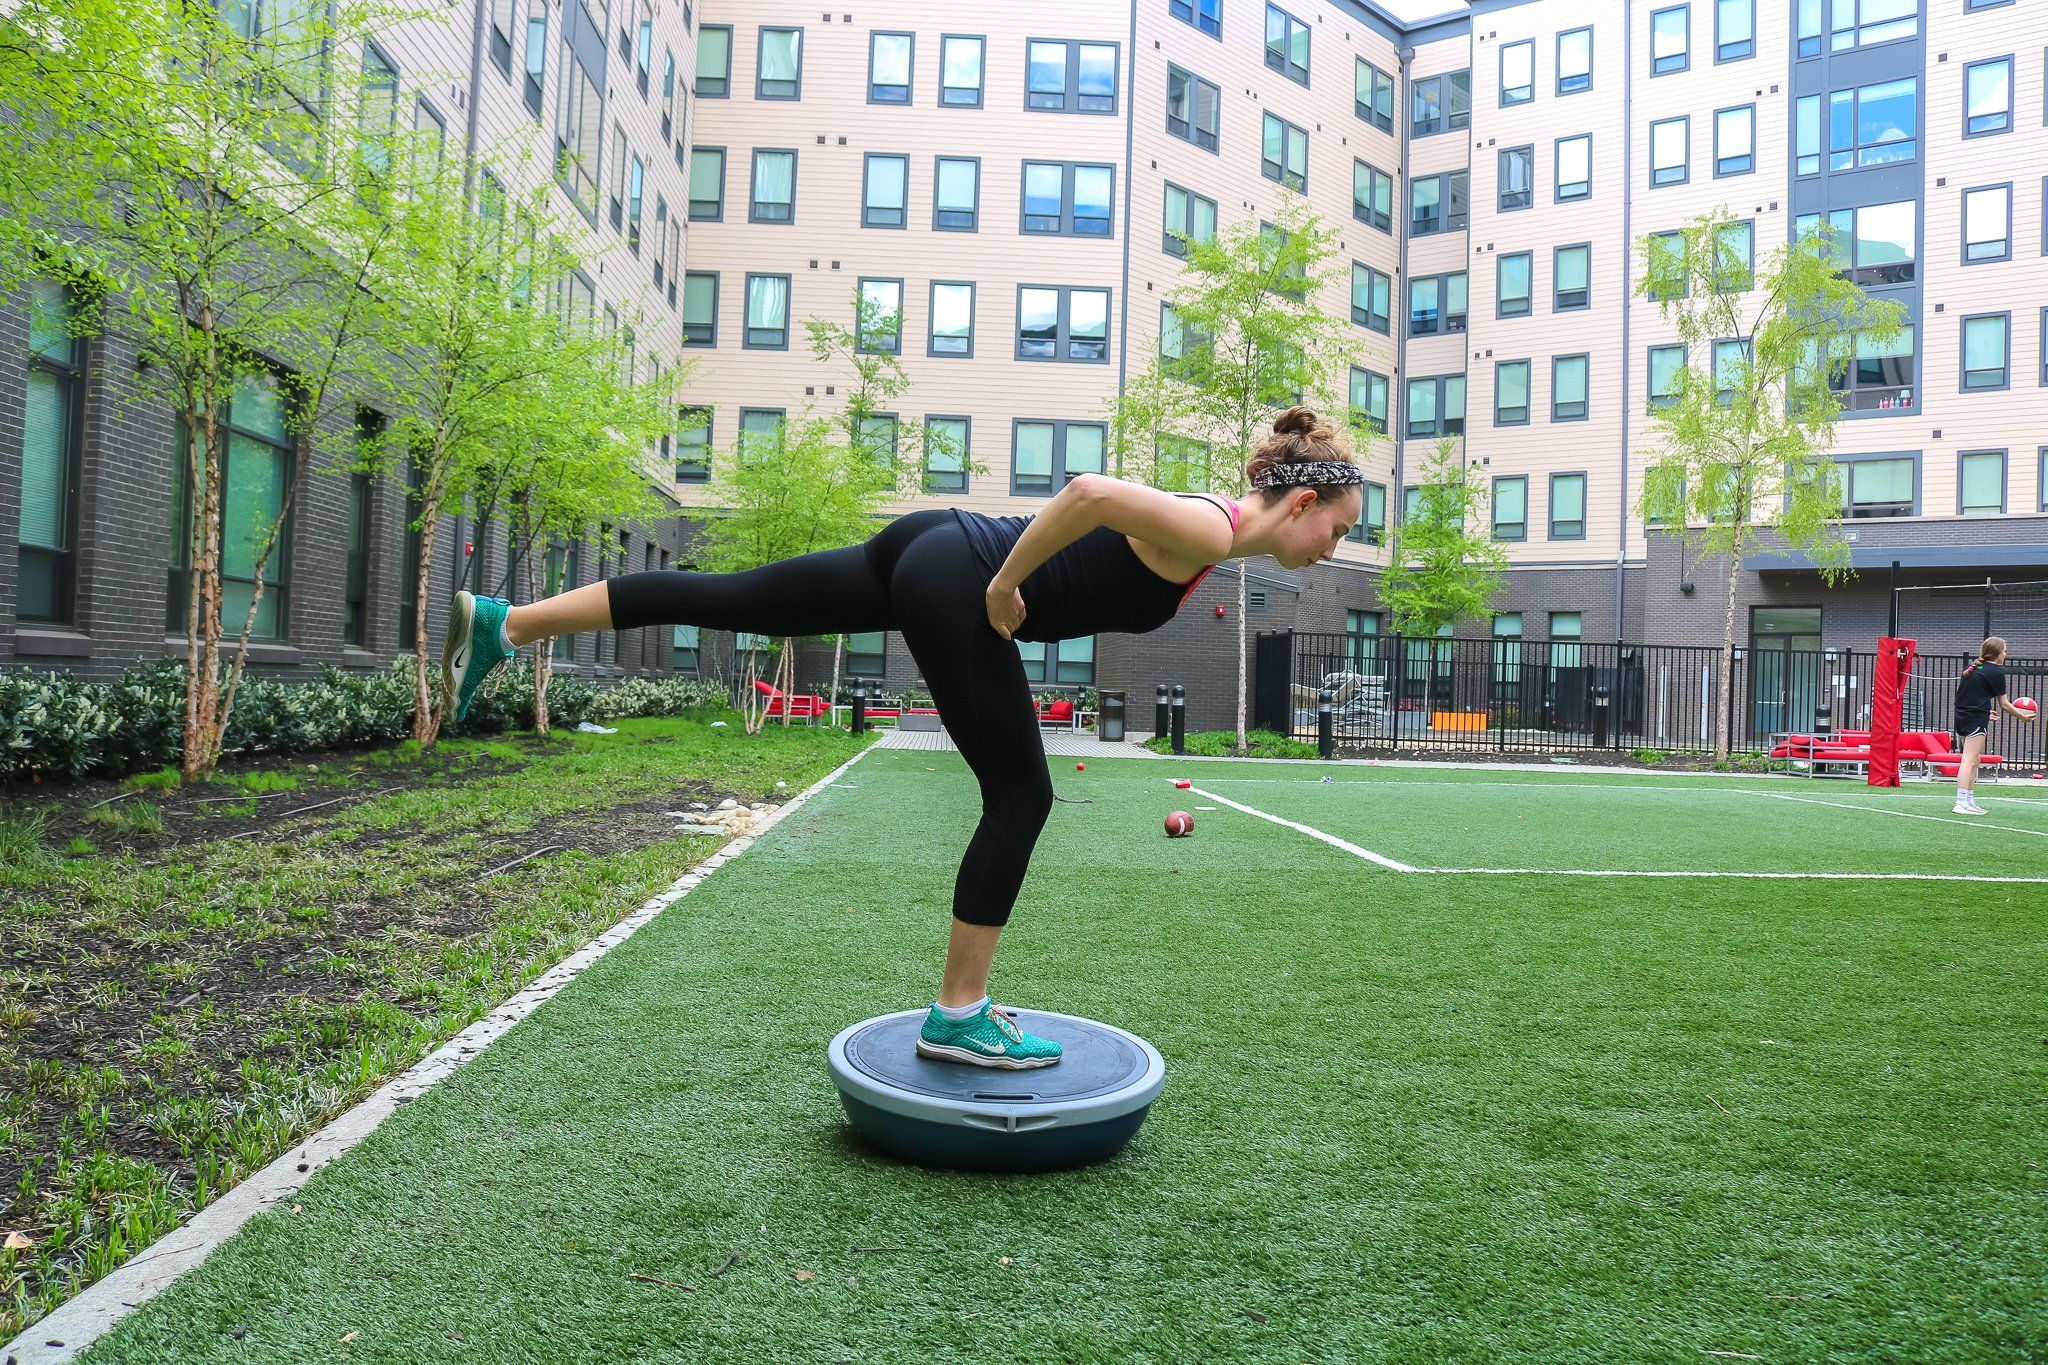 This Fun Bosu Workout Will Fire Up Your Core Activate Your Balance Bosu Workout Workout Workout Core